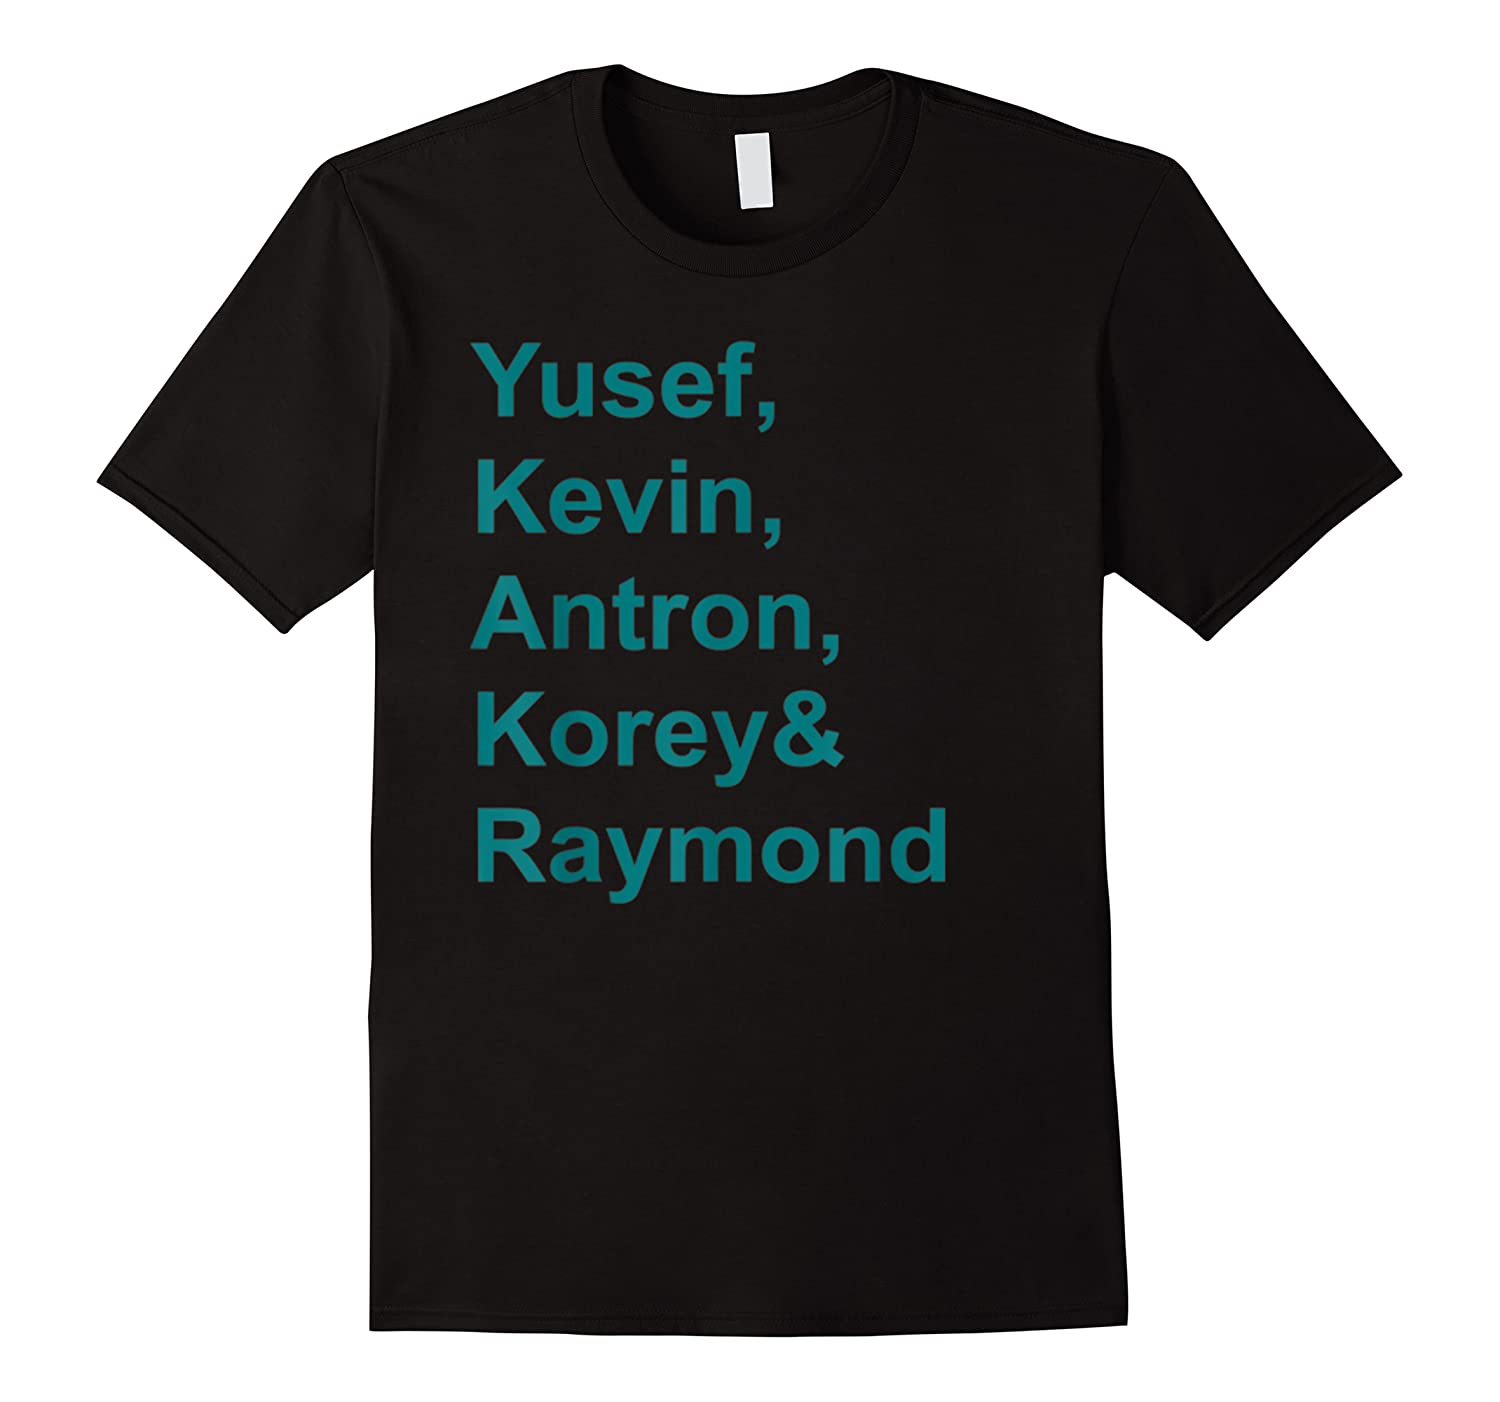 Central Park 5 T-shirt Central Park 5 Real Story Tshirt